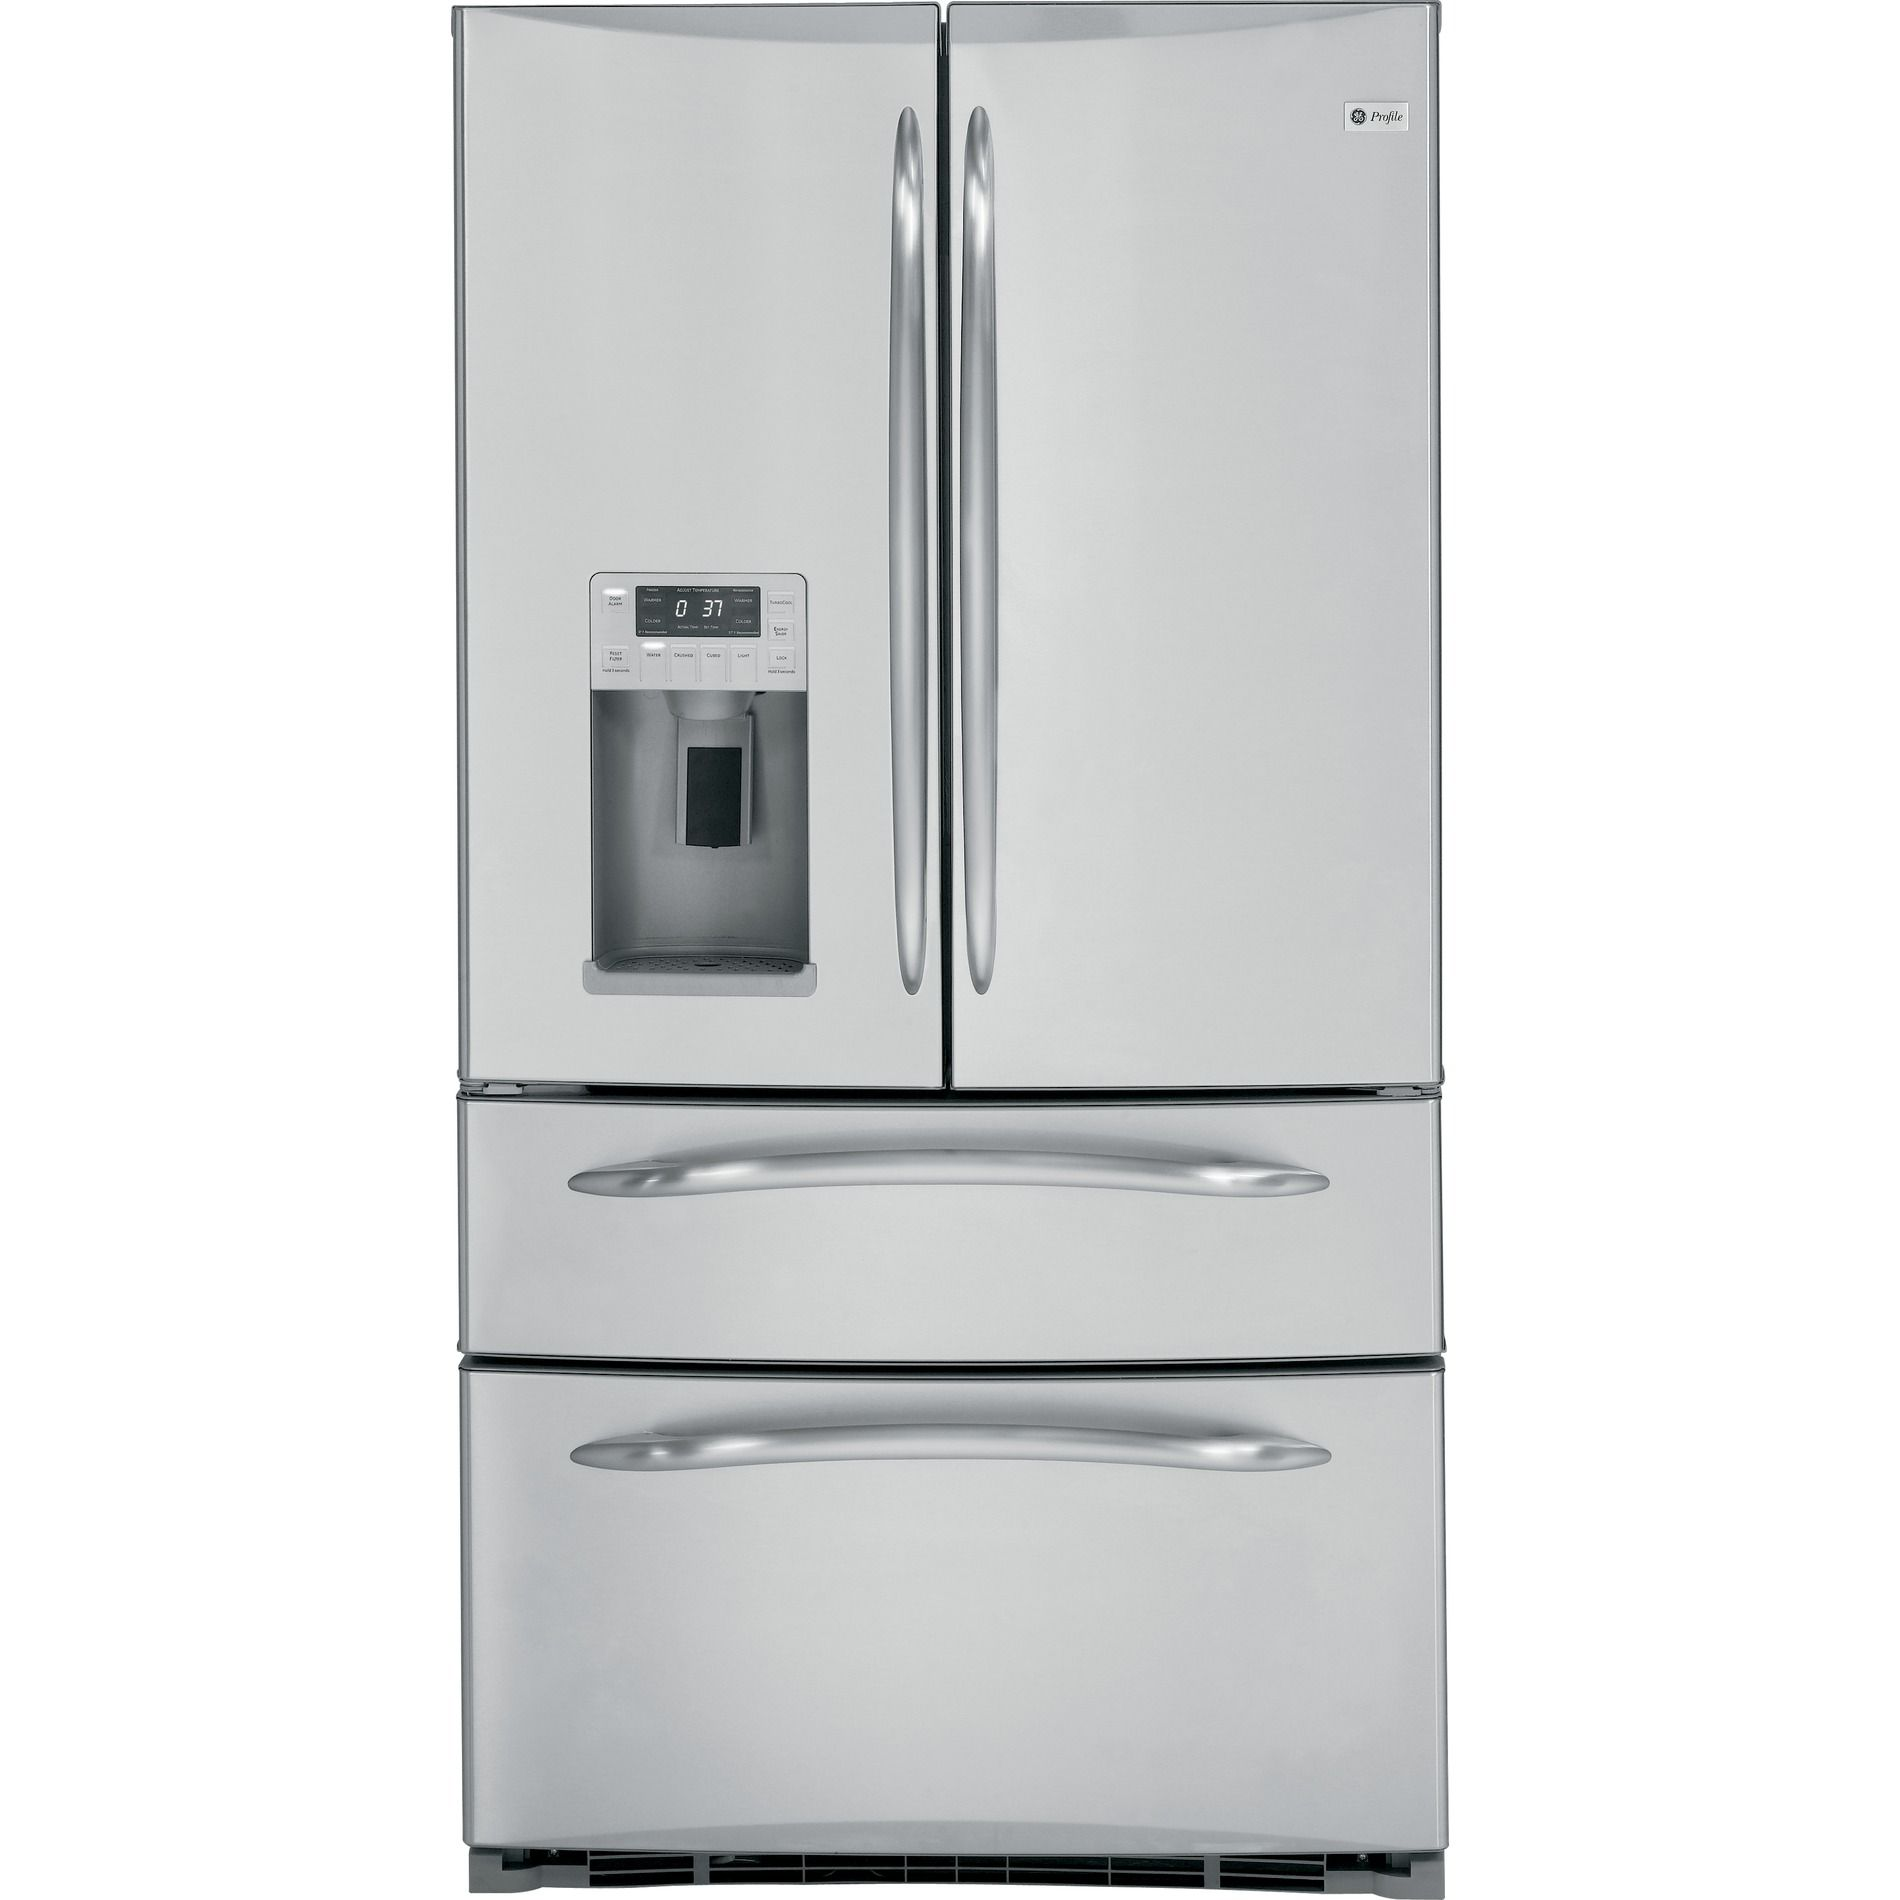 24.8 cu. ft. French-Door Bottom-Freezer Refrigerator - Stainless Steel